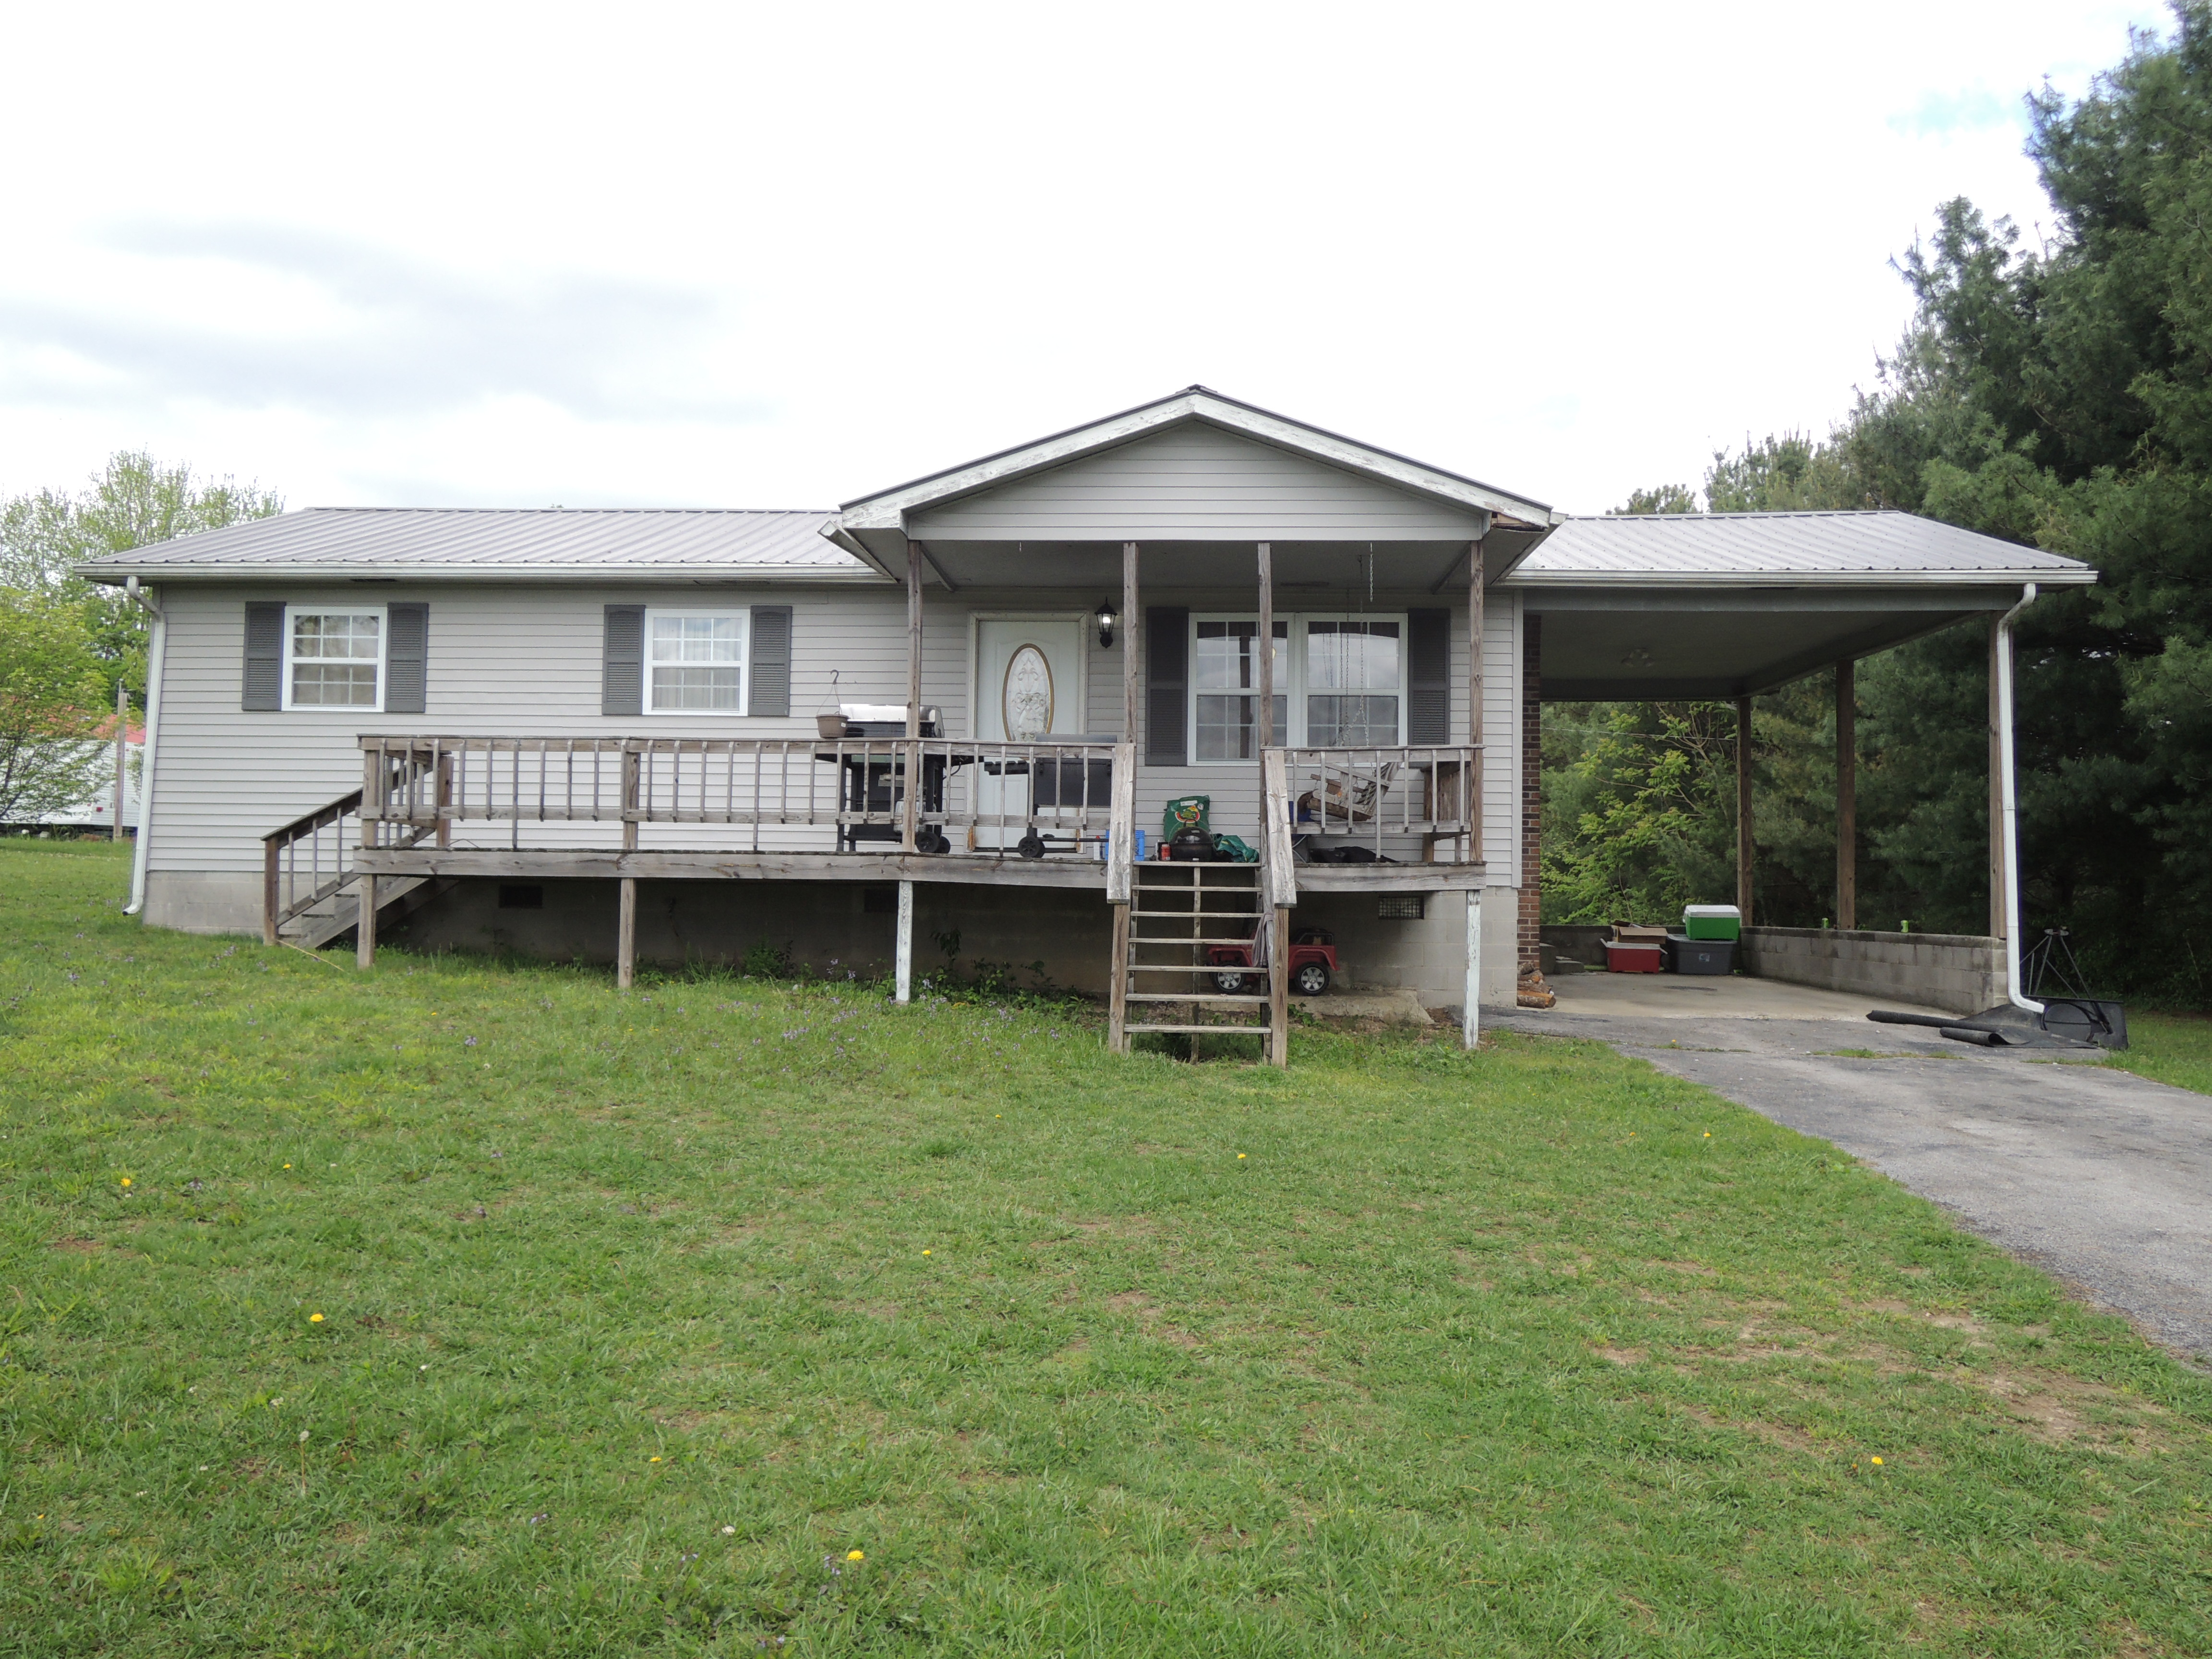 #1530 – 1522 Pearl Hinds Rd.